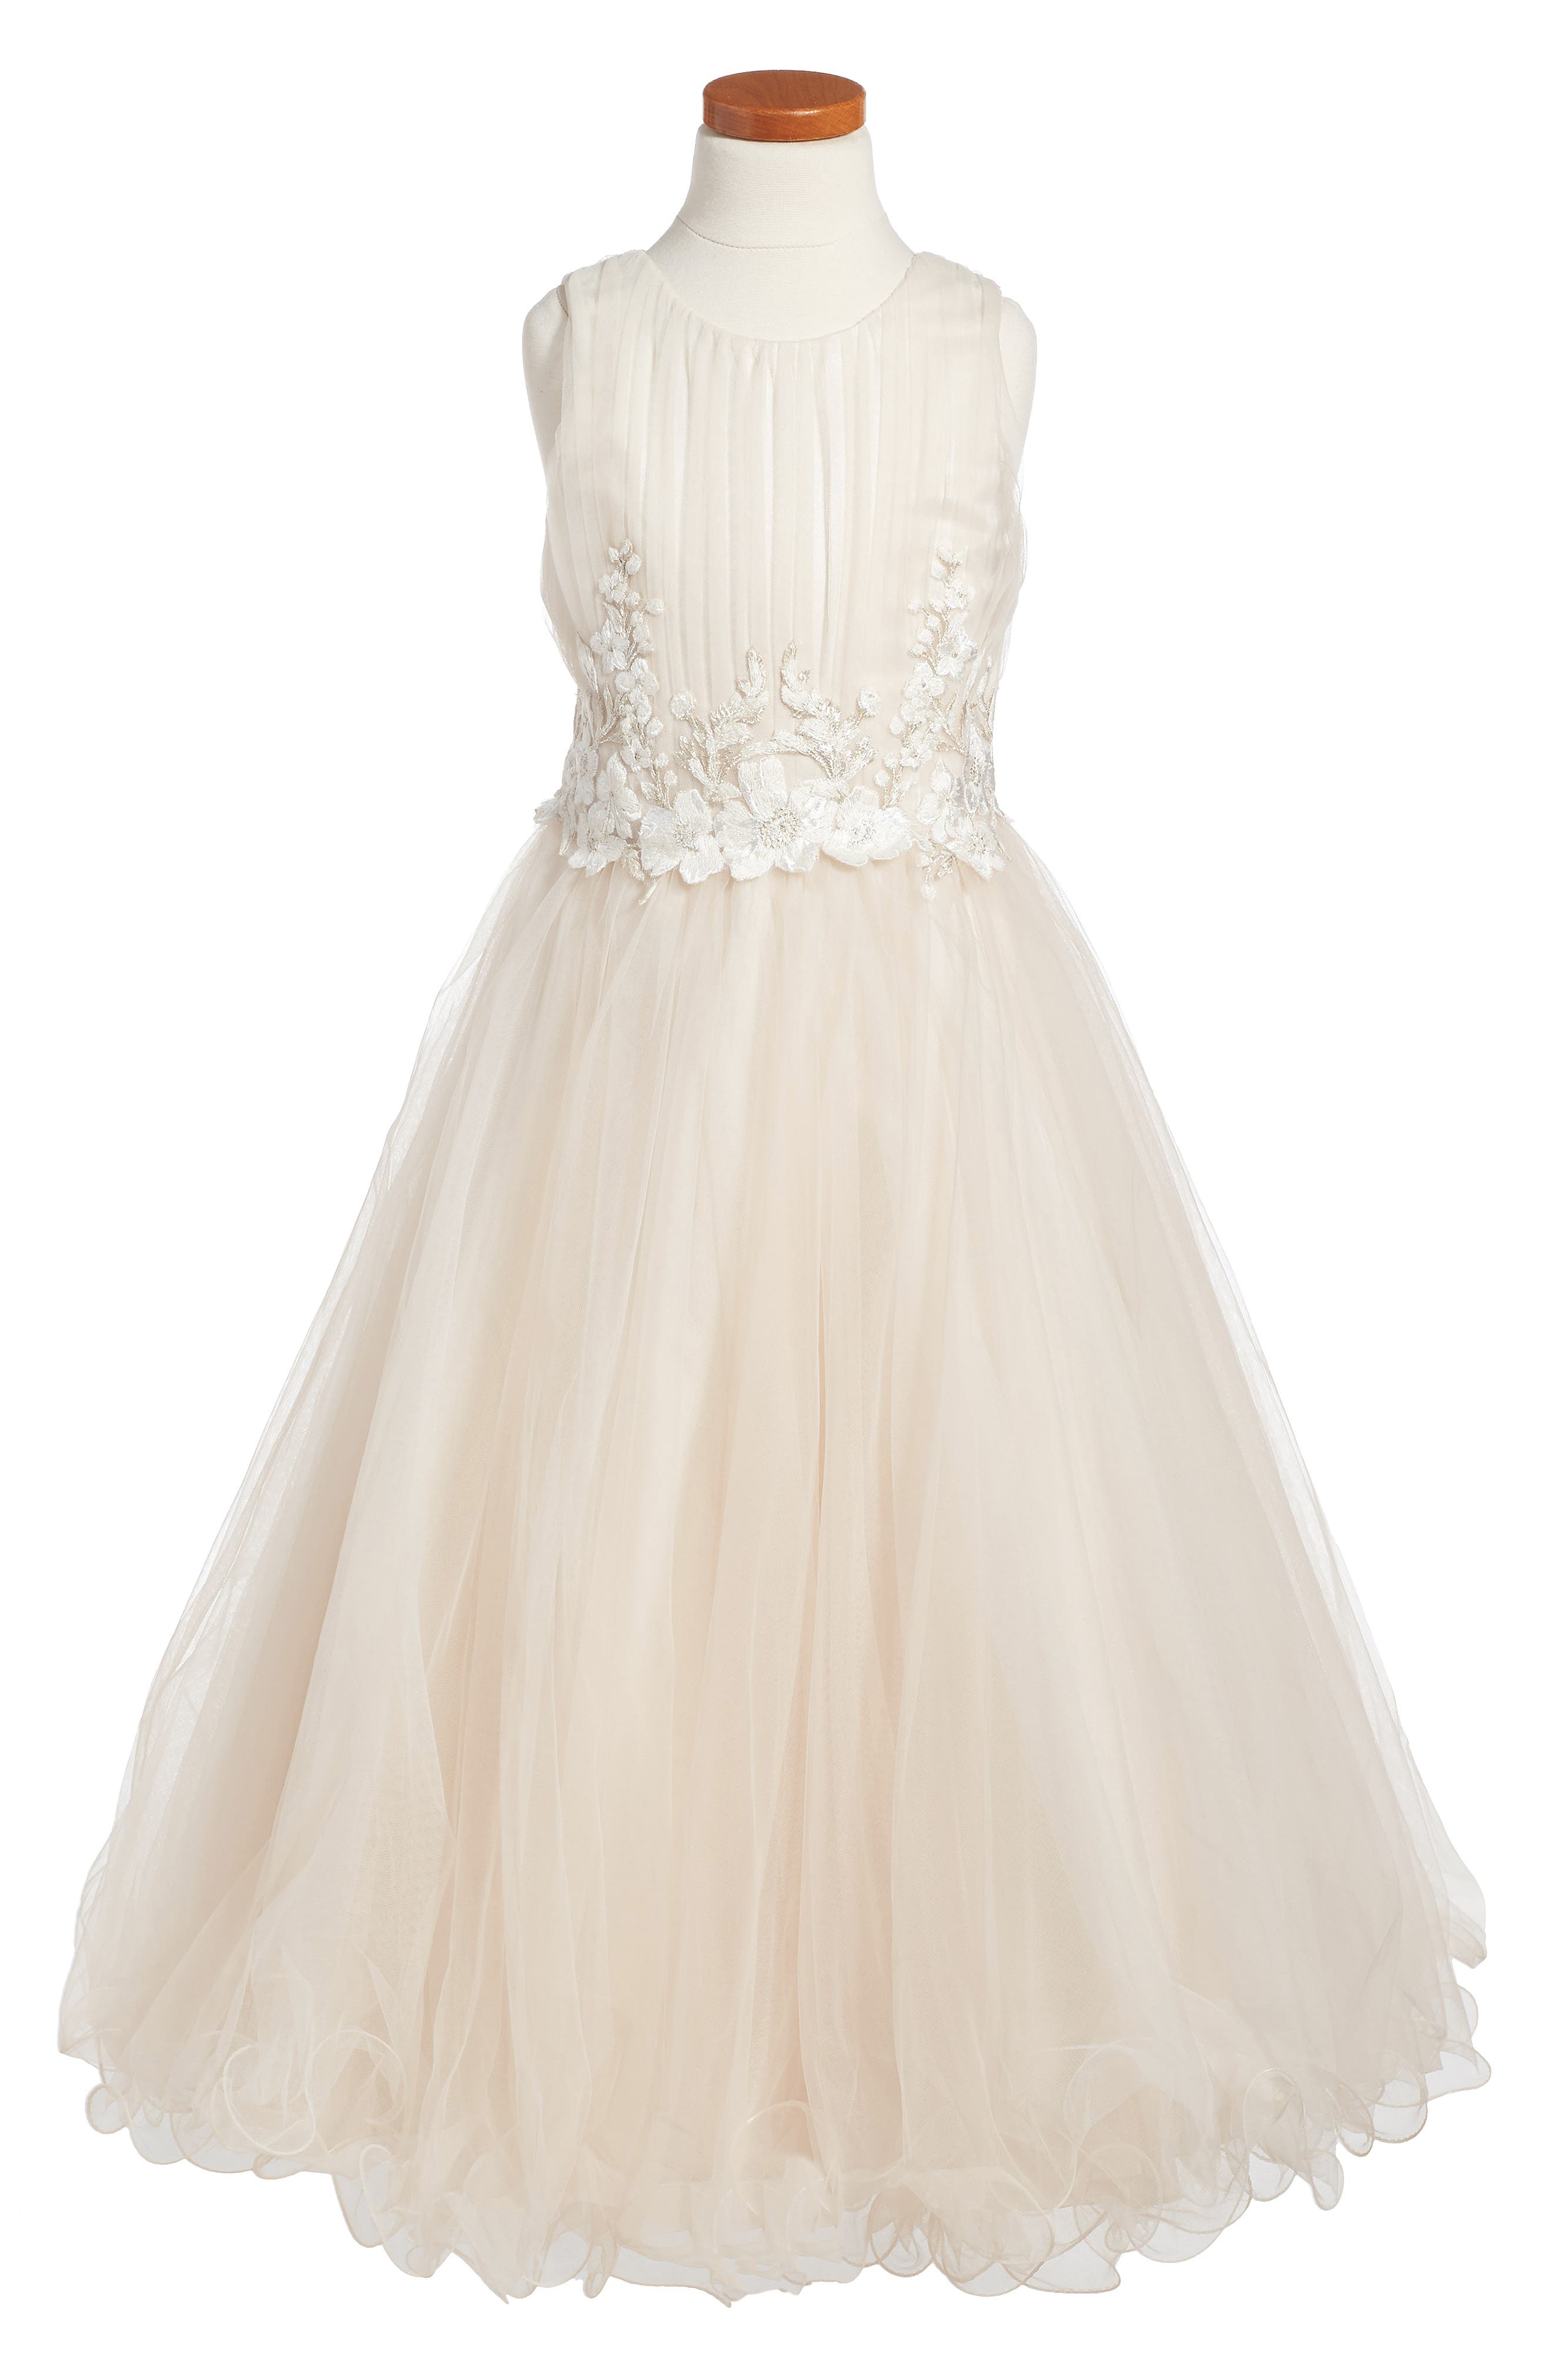 Lace & Tulle Dress,                         Main,                         color, Stone/ Oyster